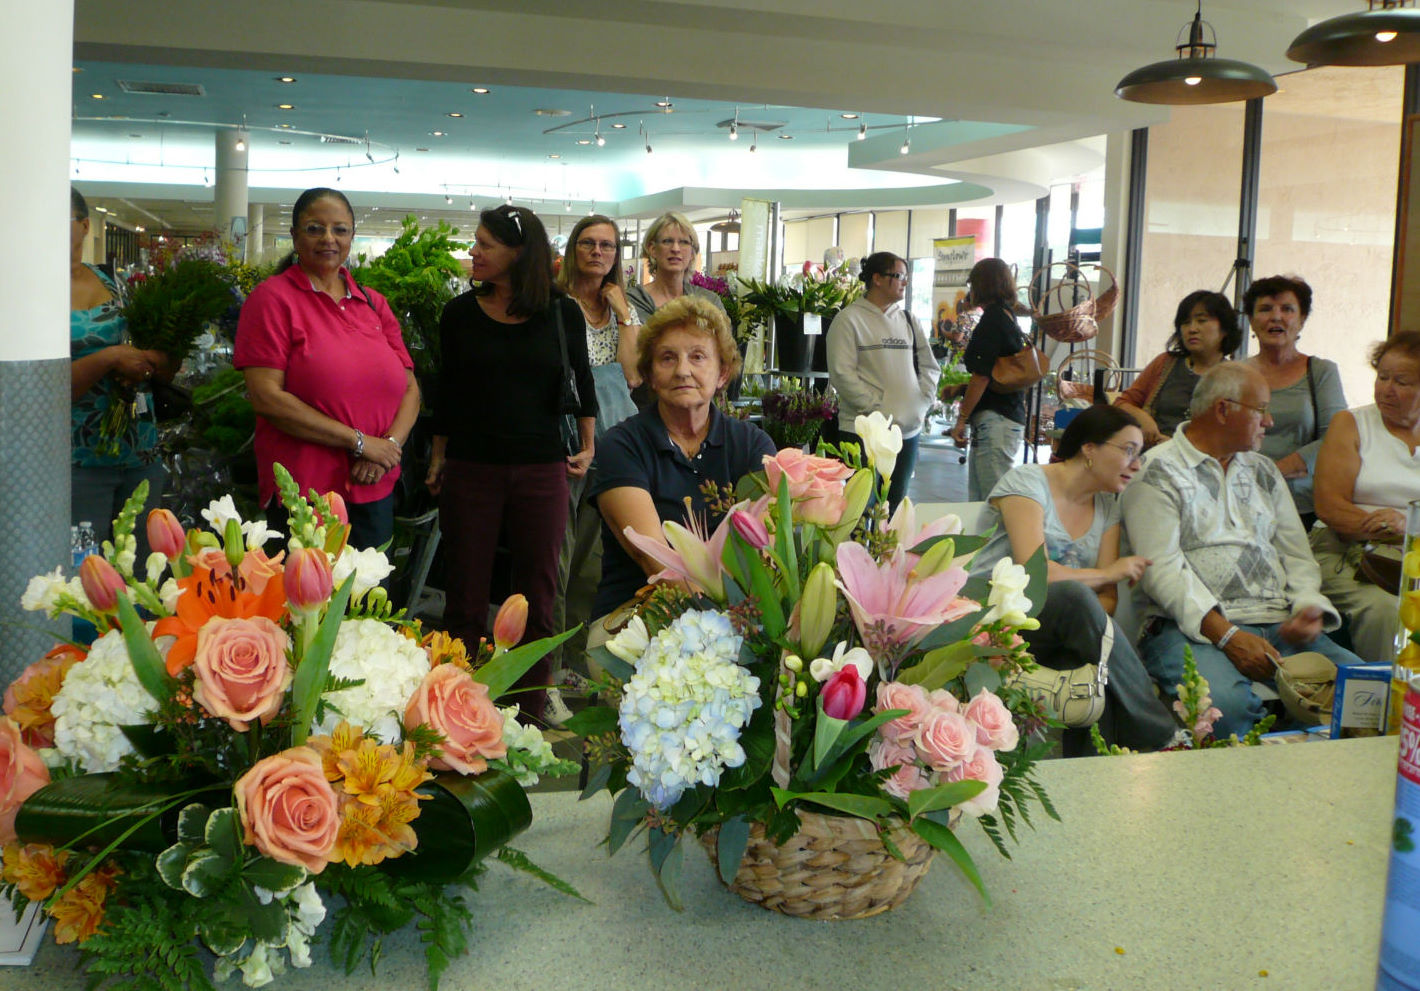 Customers enjoy a free floral demonstration